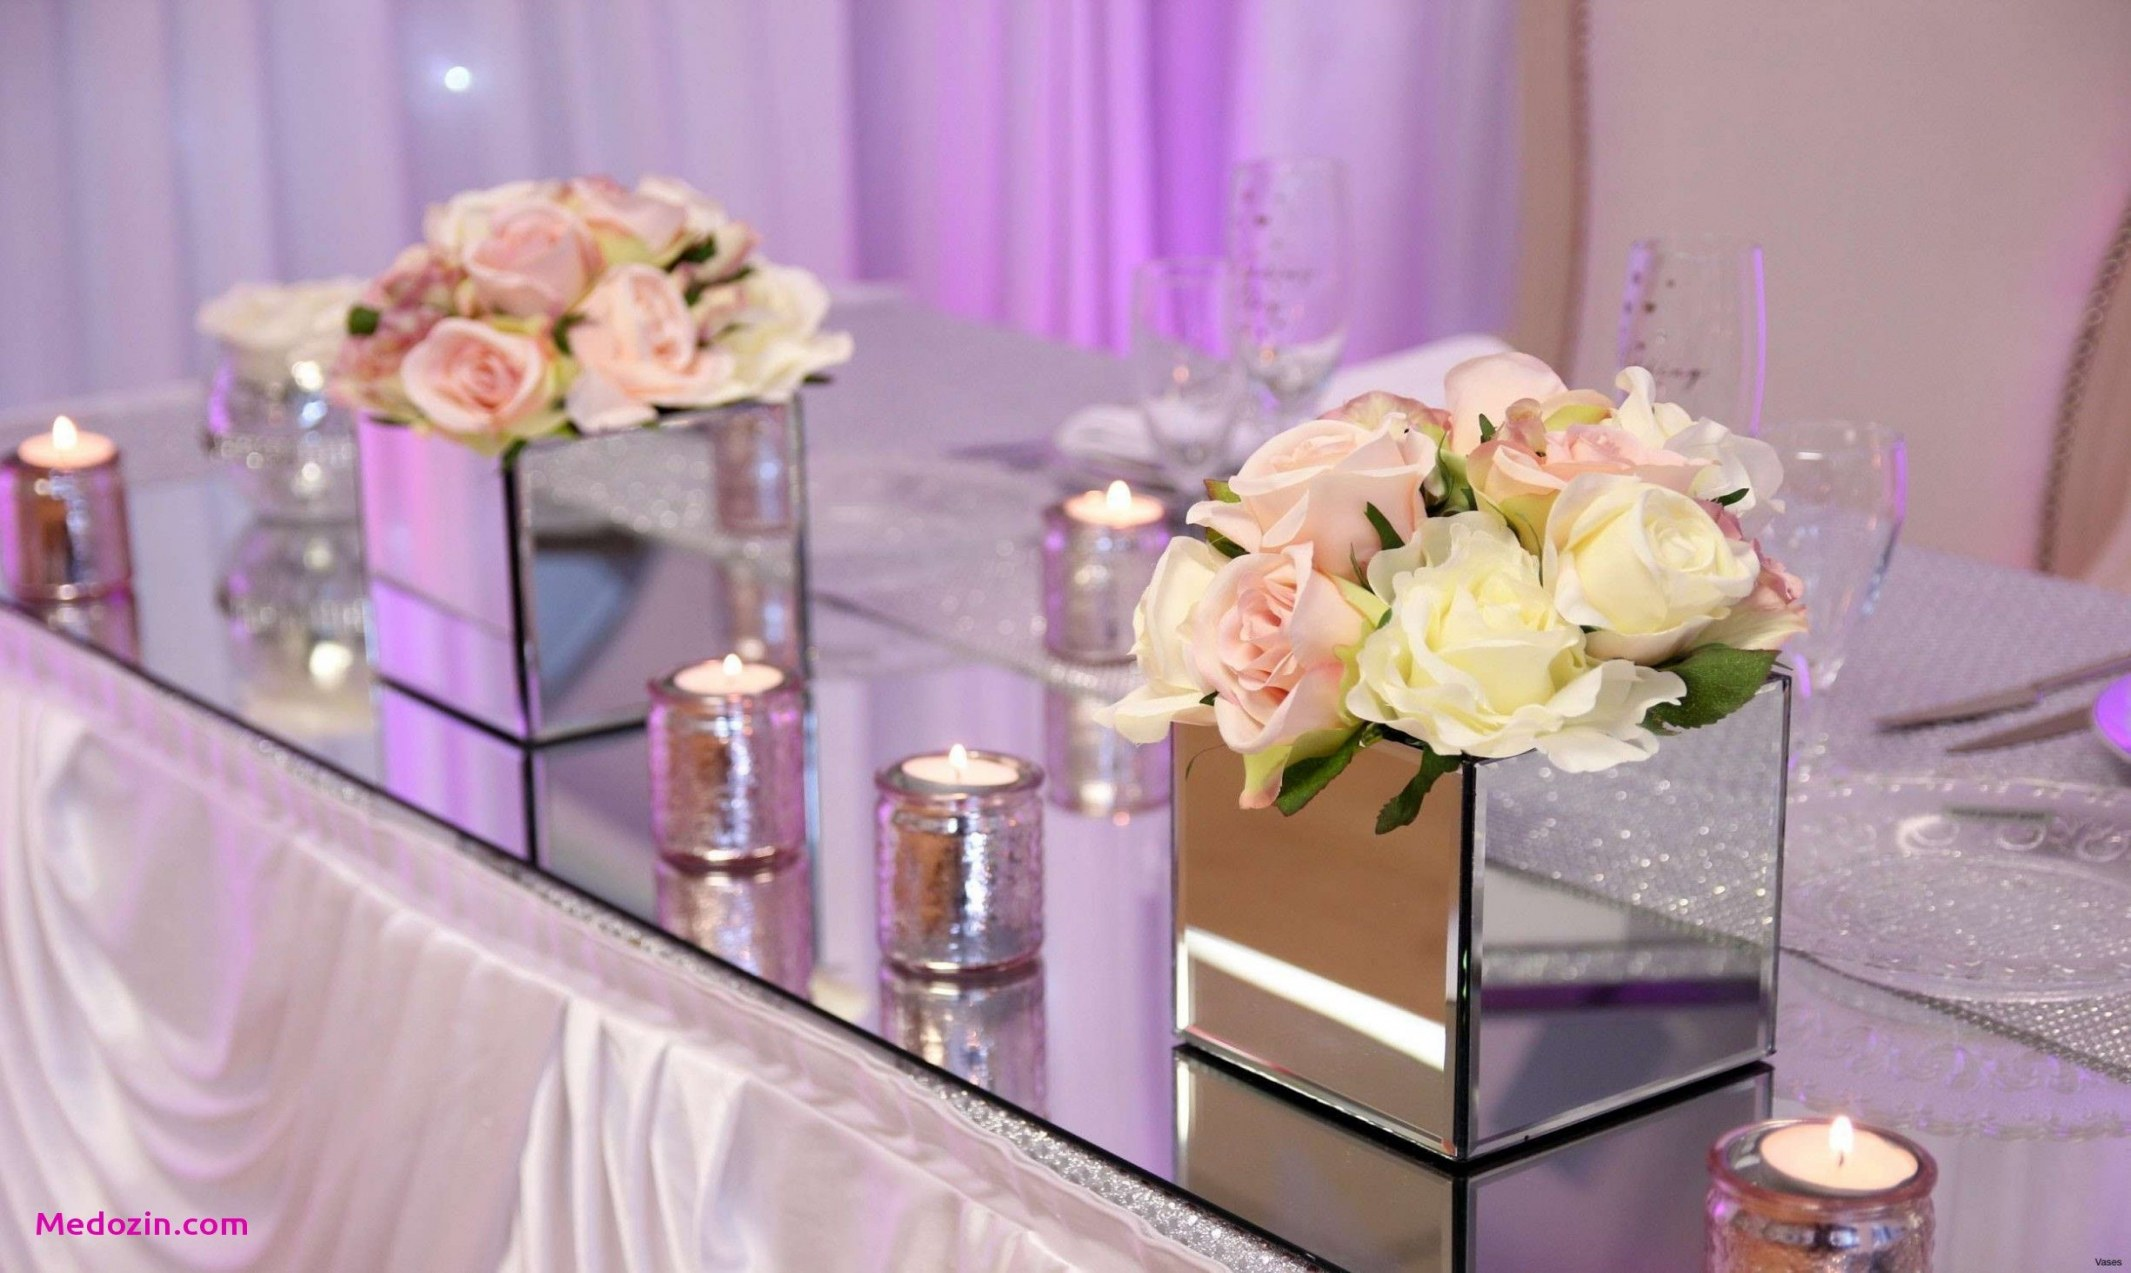 wedding table decorations mirrored square vase 3h vases mirror table decorationi 0d of wedding table decorations